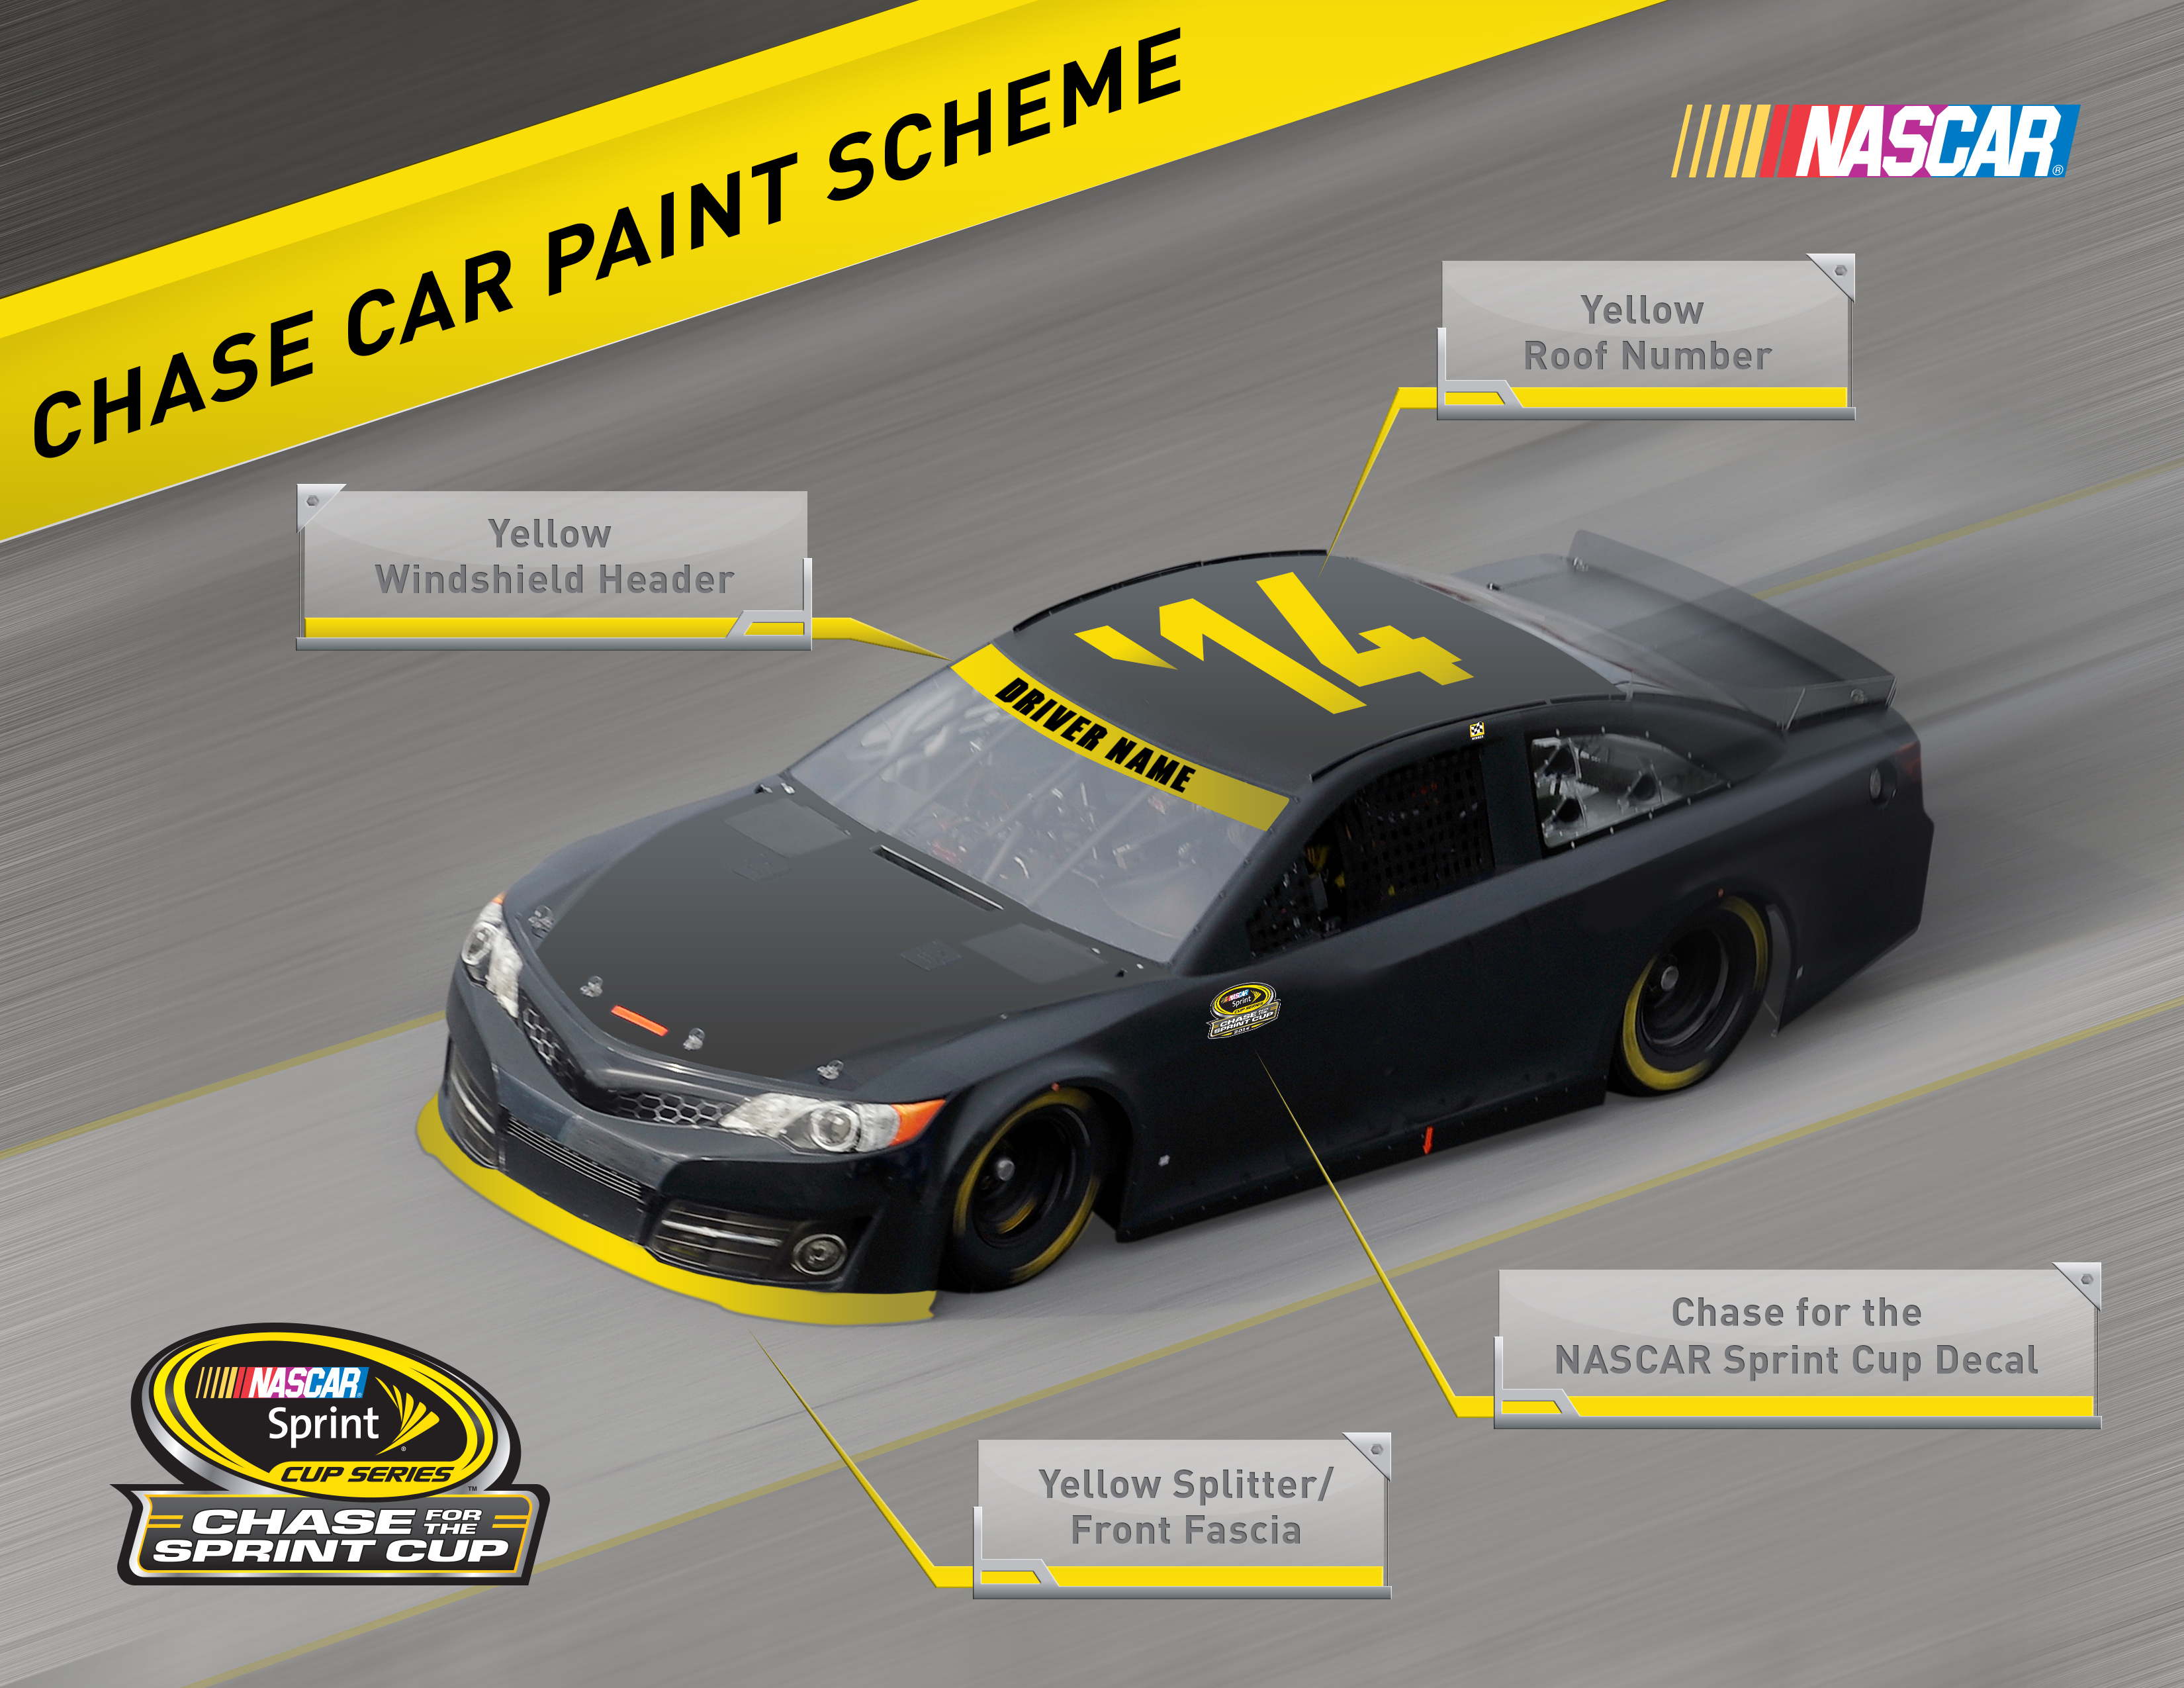 nascar introduces special paint scheme elements for chase